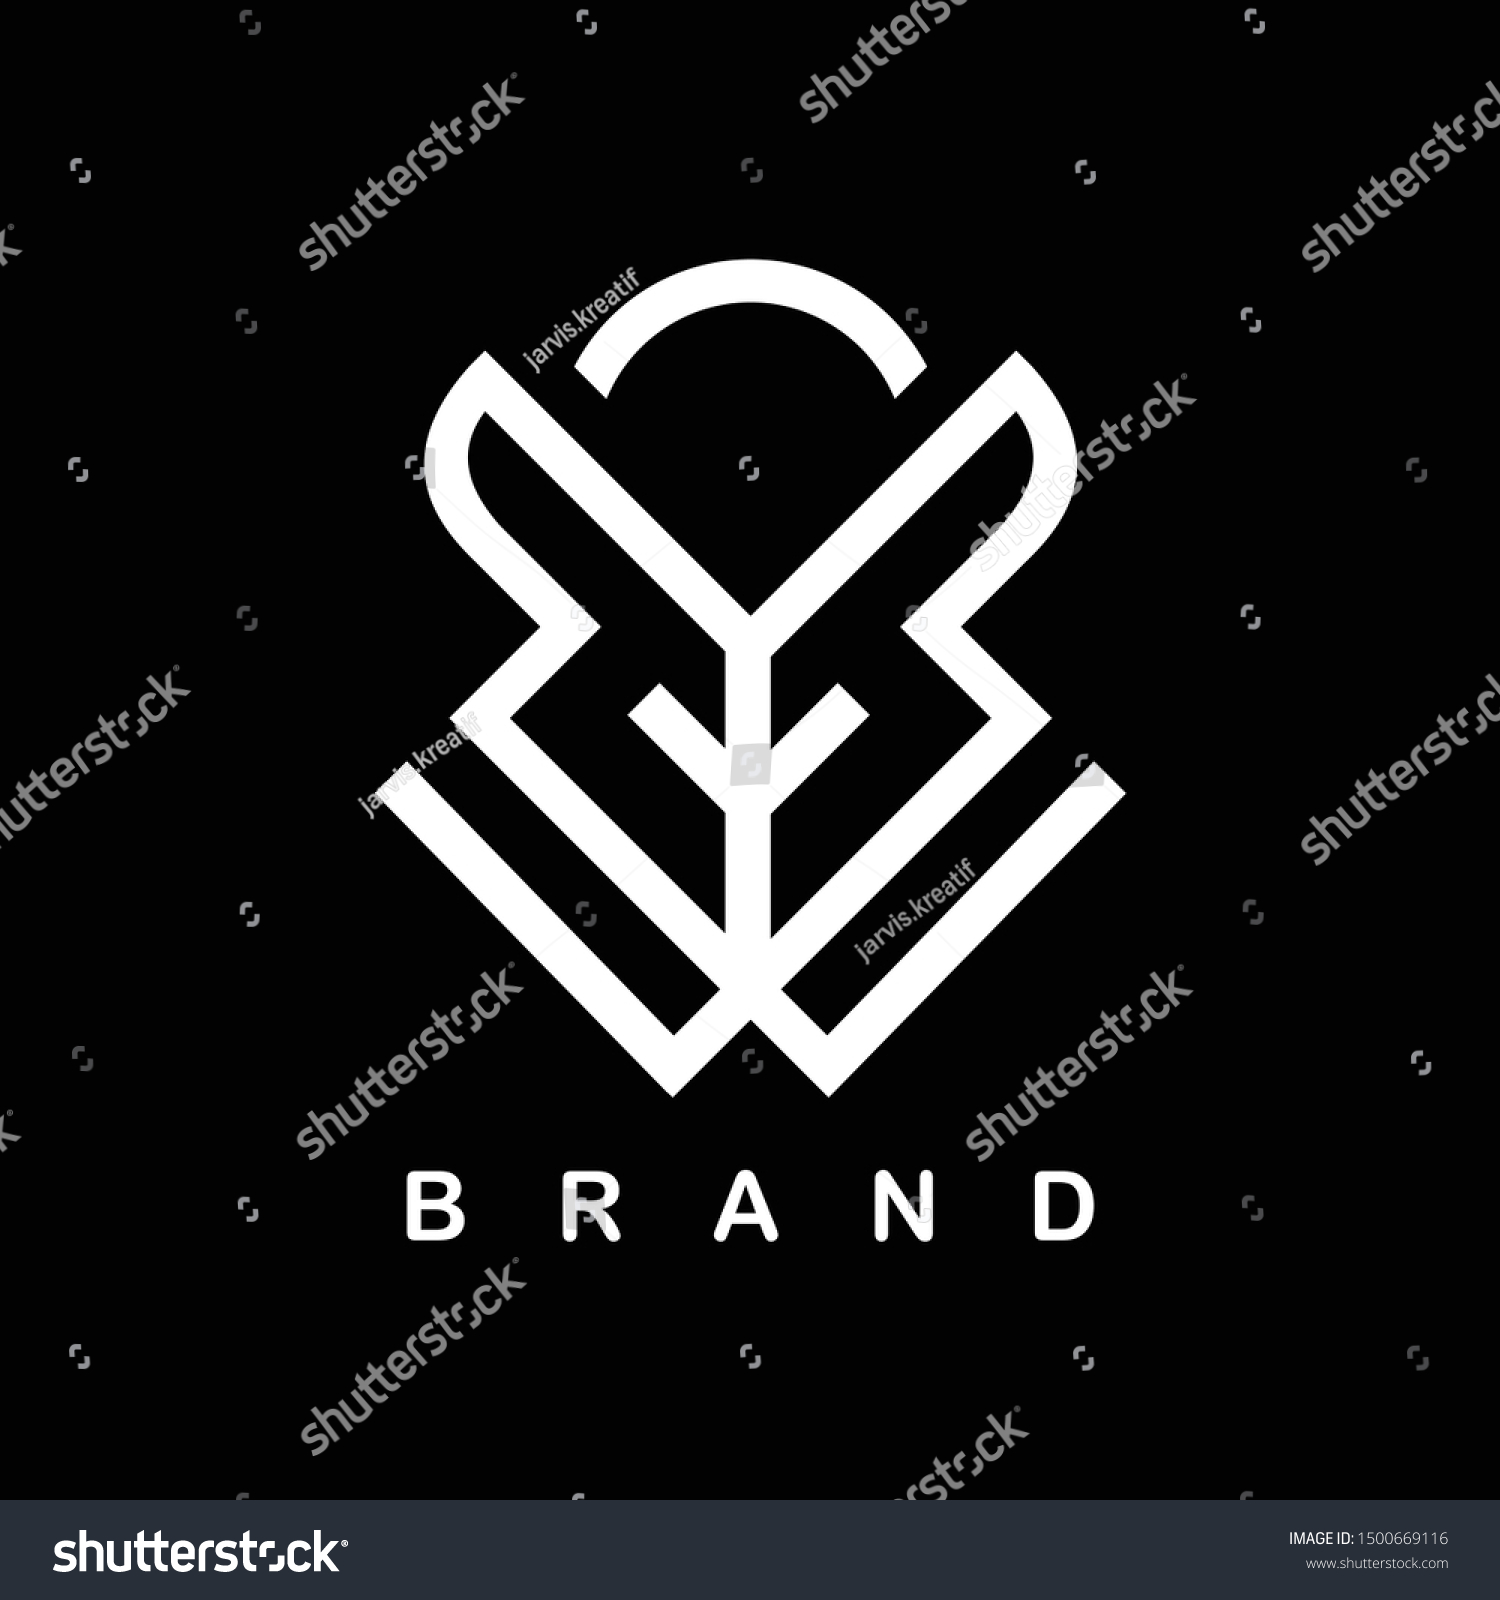 Warrior Samurai Concept Simple Logo Stock Vector Royalty Free 1500669116